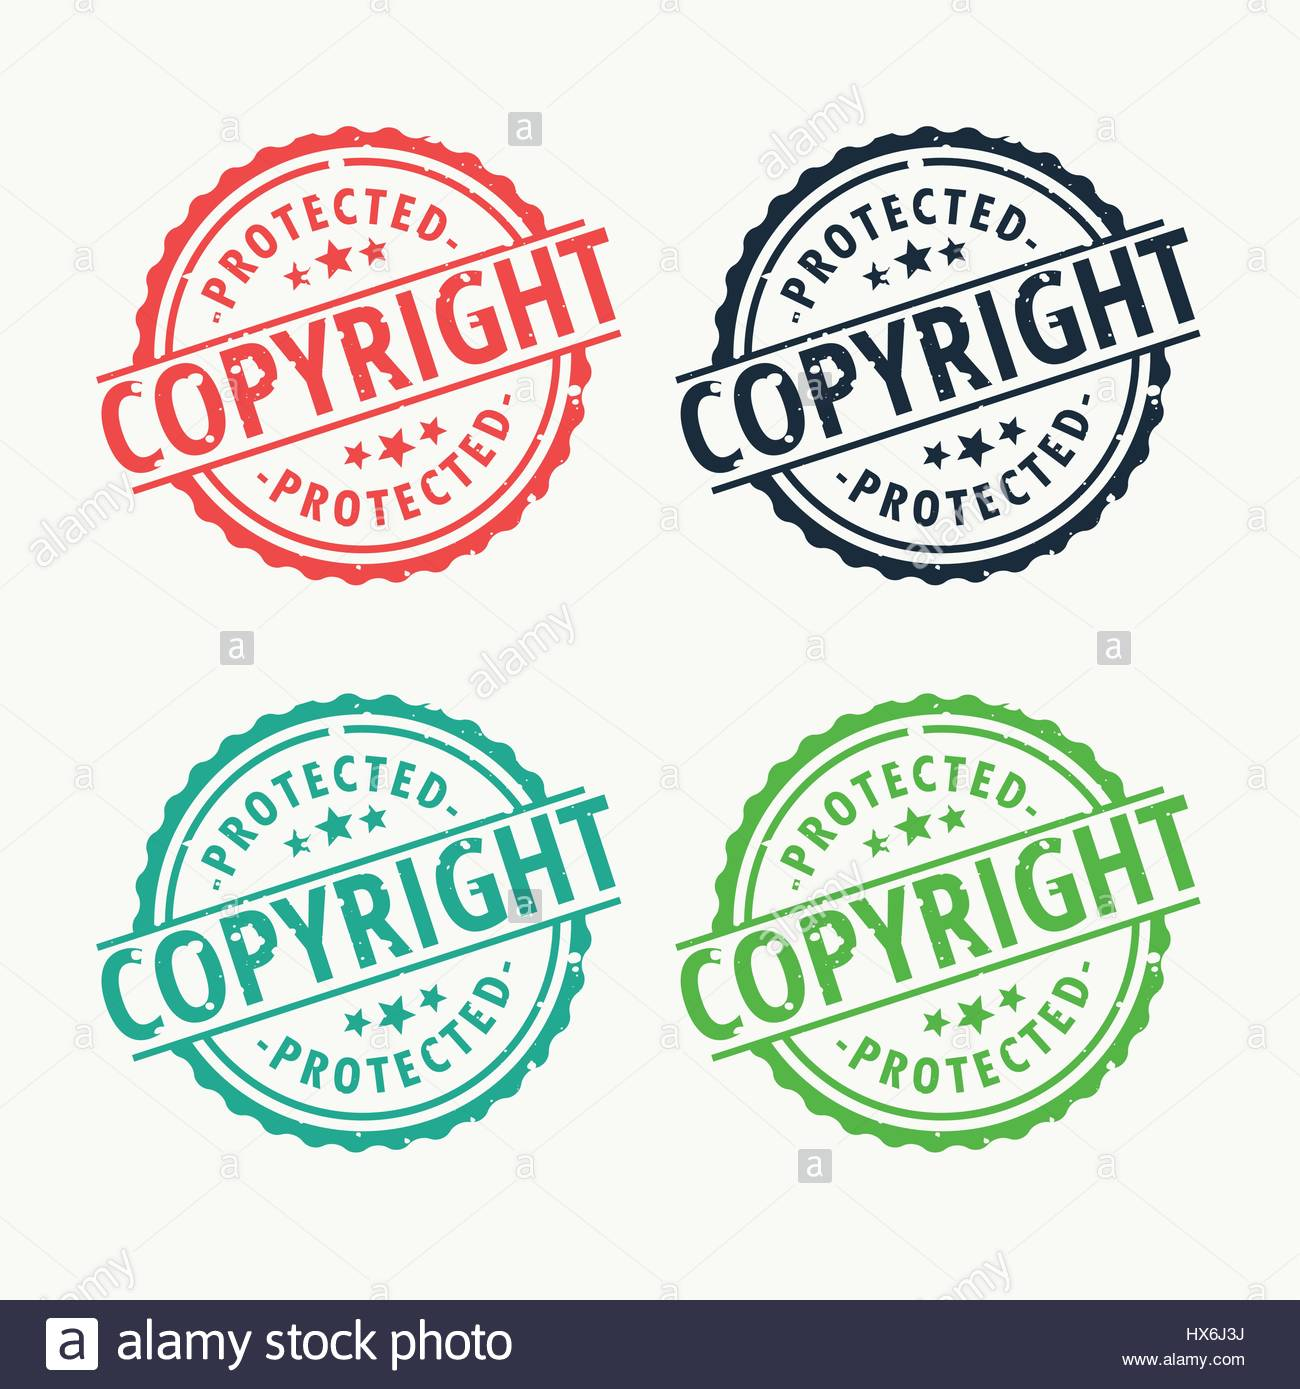 copyright badge rubber stamp set in different colors - Stock Image